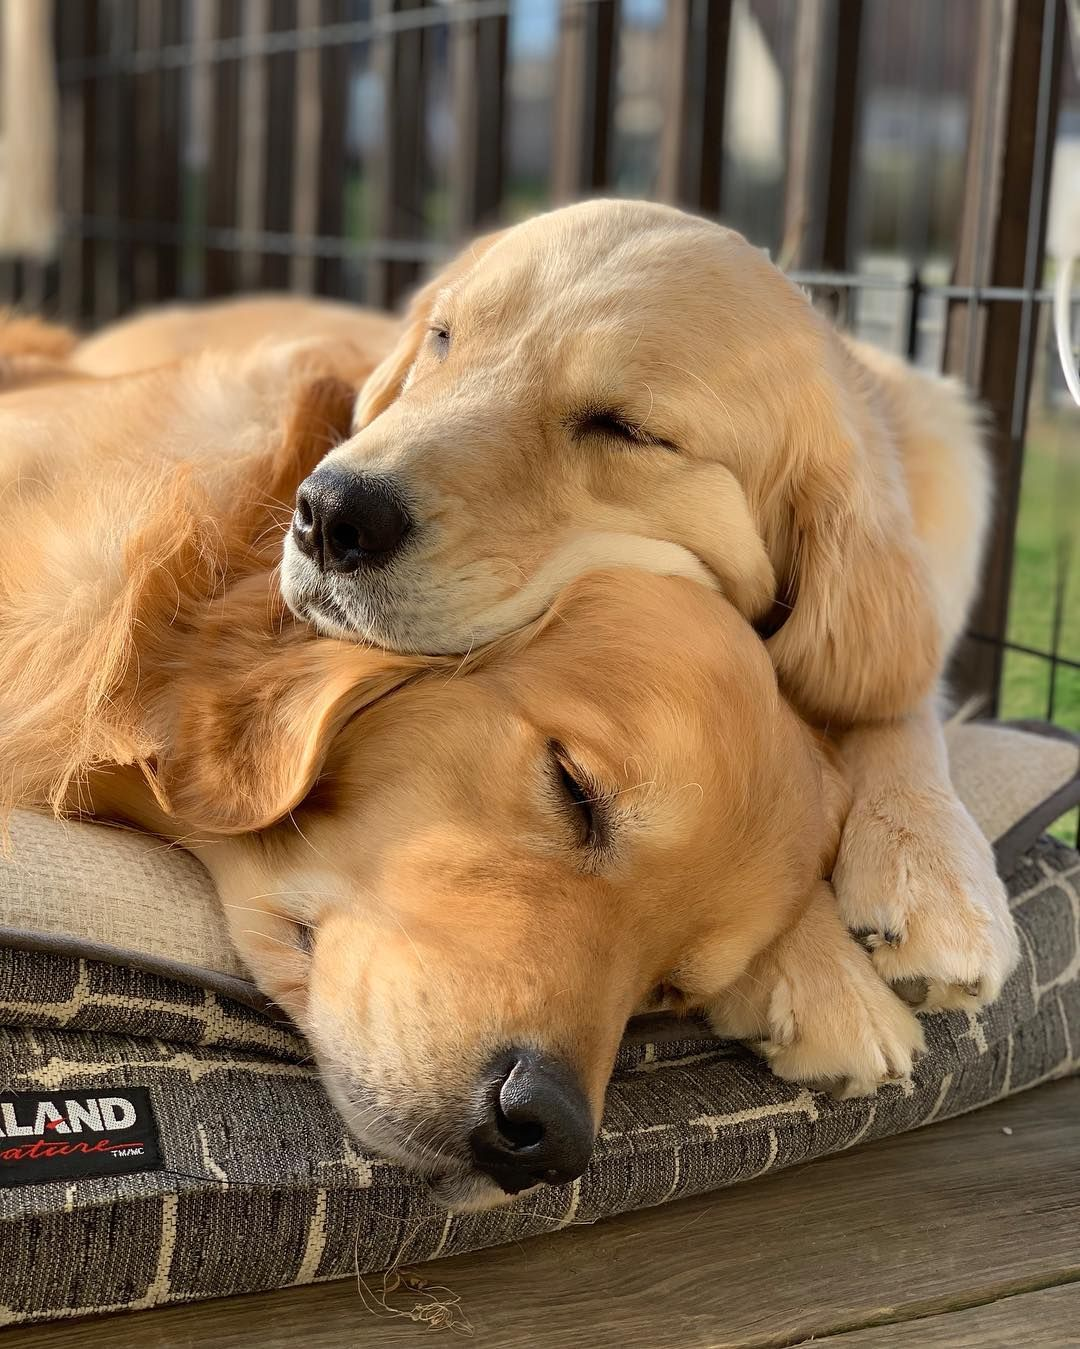 Waterfront Golden Retrievers On Instagram When You Re Not Really In A Relationship But You Re Not Si Golden Retriever Labrador Mix Golden Retriever Old Dogs